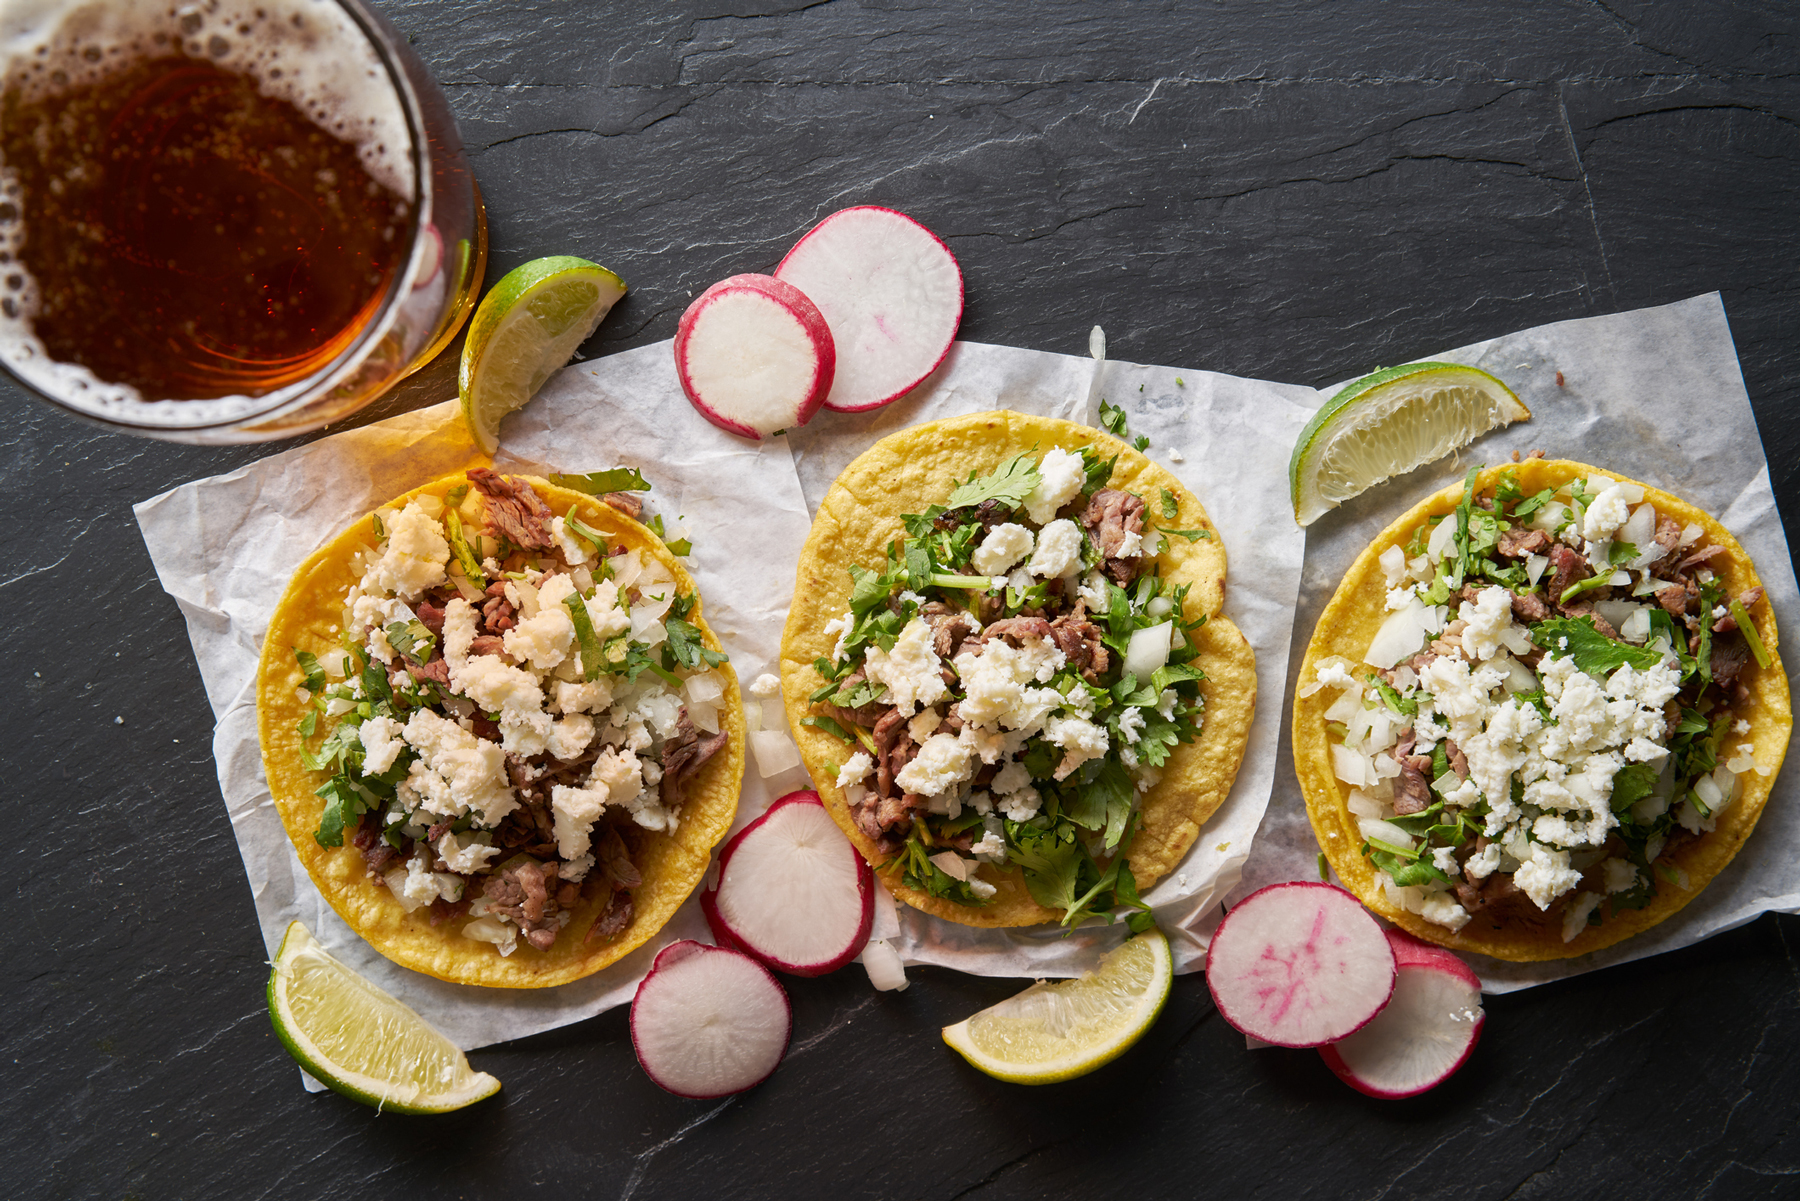 Beer and carne asada mexican tacos